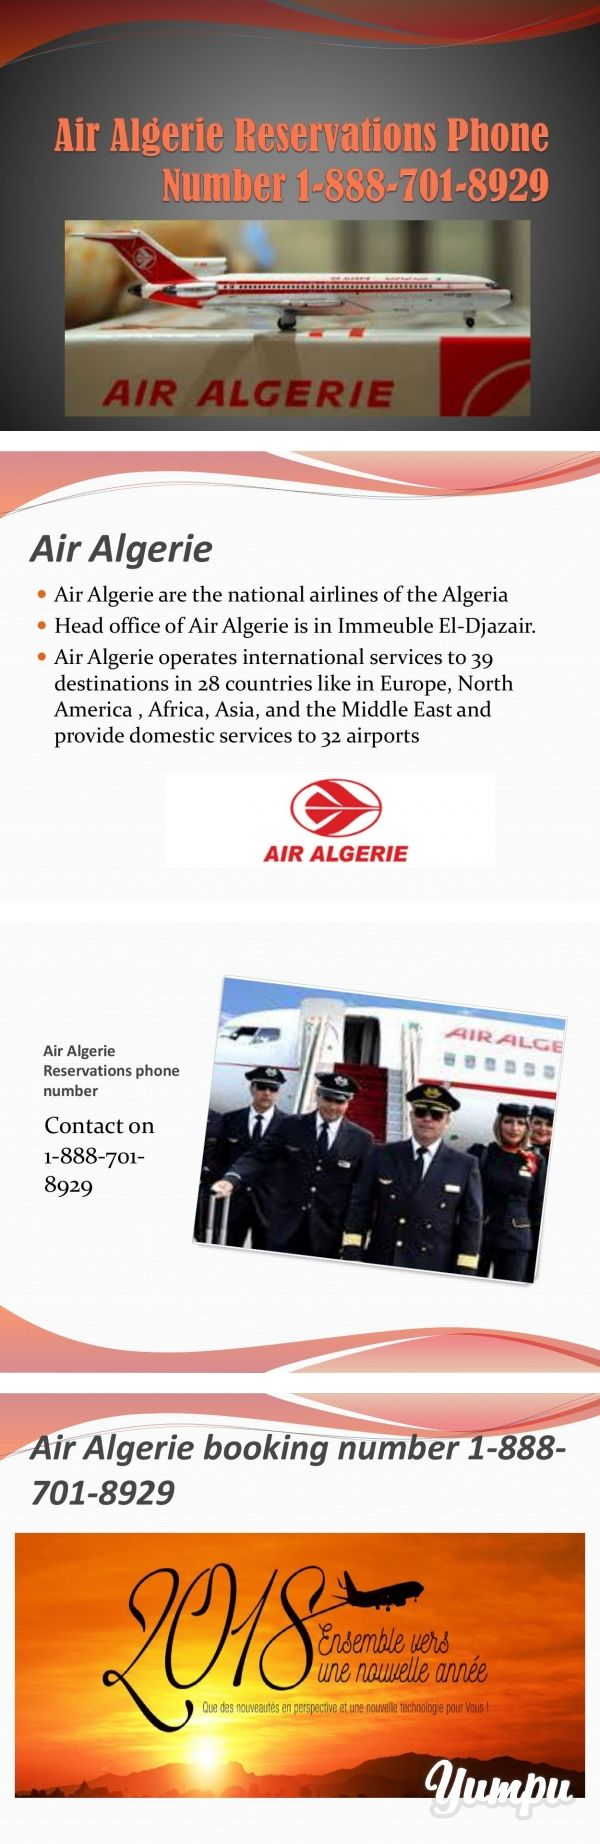 Air Algerie customer service number 1-888-701-8929 | booking number  - Magazine with 12 pages: Air Algerie is basically a regional flight of the Algeria. There are so many services provided by the Air Algerie like customers can book their flight tickets by just on call on the Air Algerie reservations phone number 1-888-701-8929.  If the customer need to know the any of the status about the Air Algerie then the  customers can contact to the Air Algerie customer service number 1-888-701-8929.